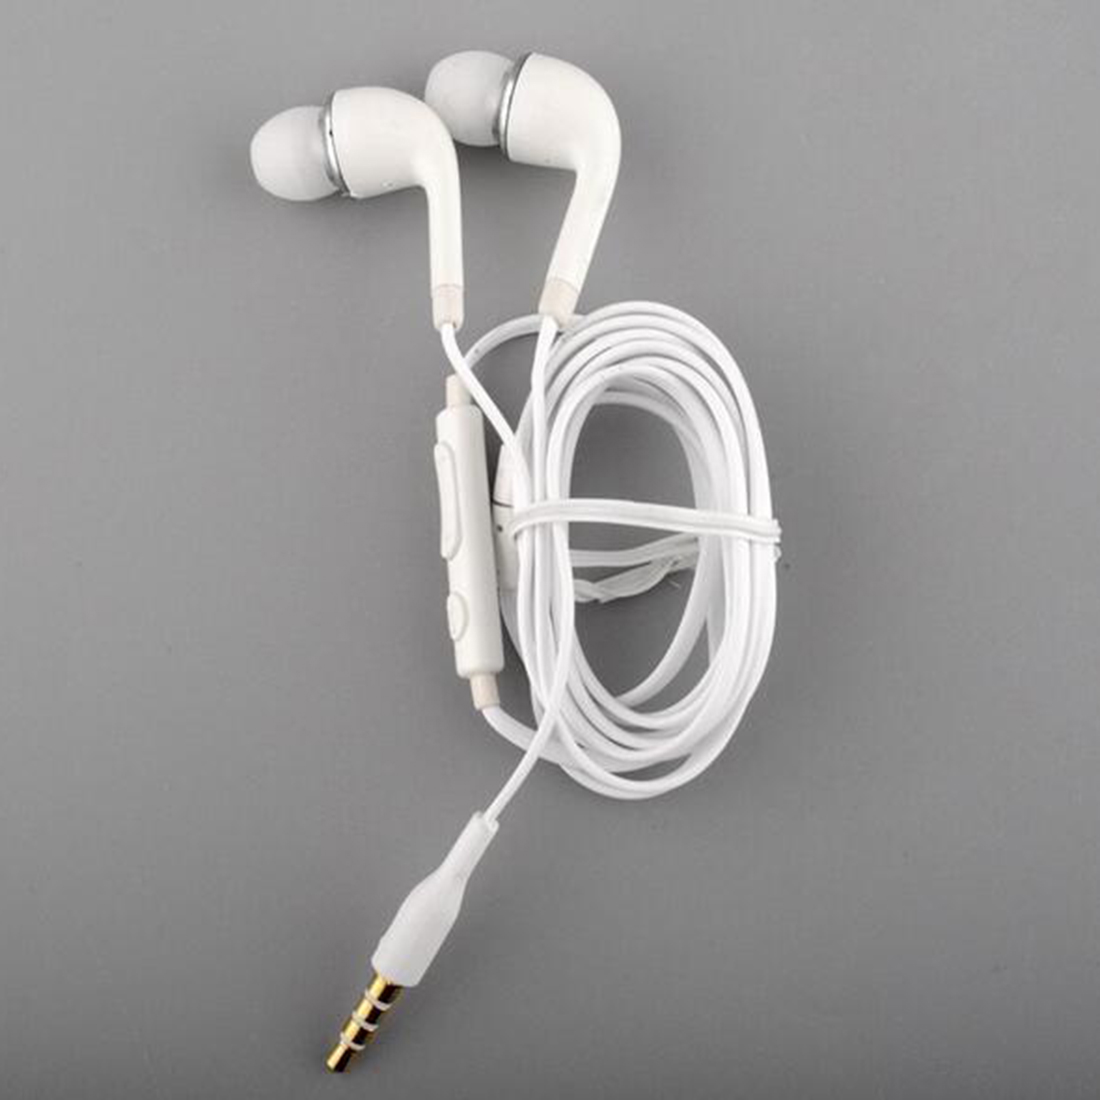 Marsnaska White Handsfree Headset In Ear Earphones For SAMSUNG GALAXY S4 With Remote MIC s6 3 5mm in ear earphones headset with mic volume control remote control for samsung galaxy s5 s4 s7 s6 note 5 4 3 xiaomi 2